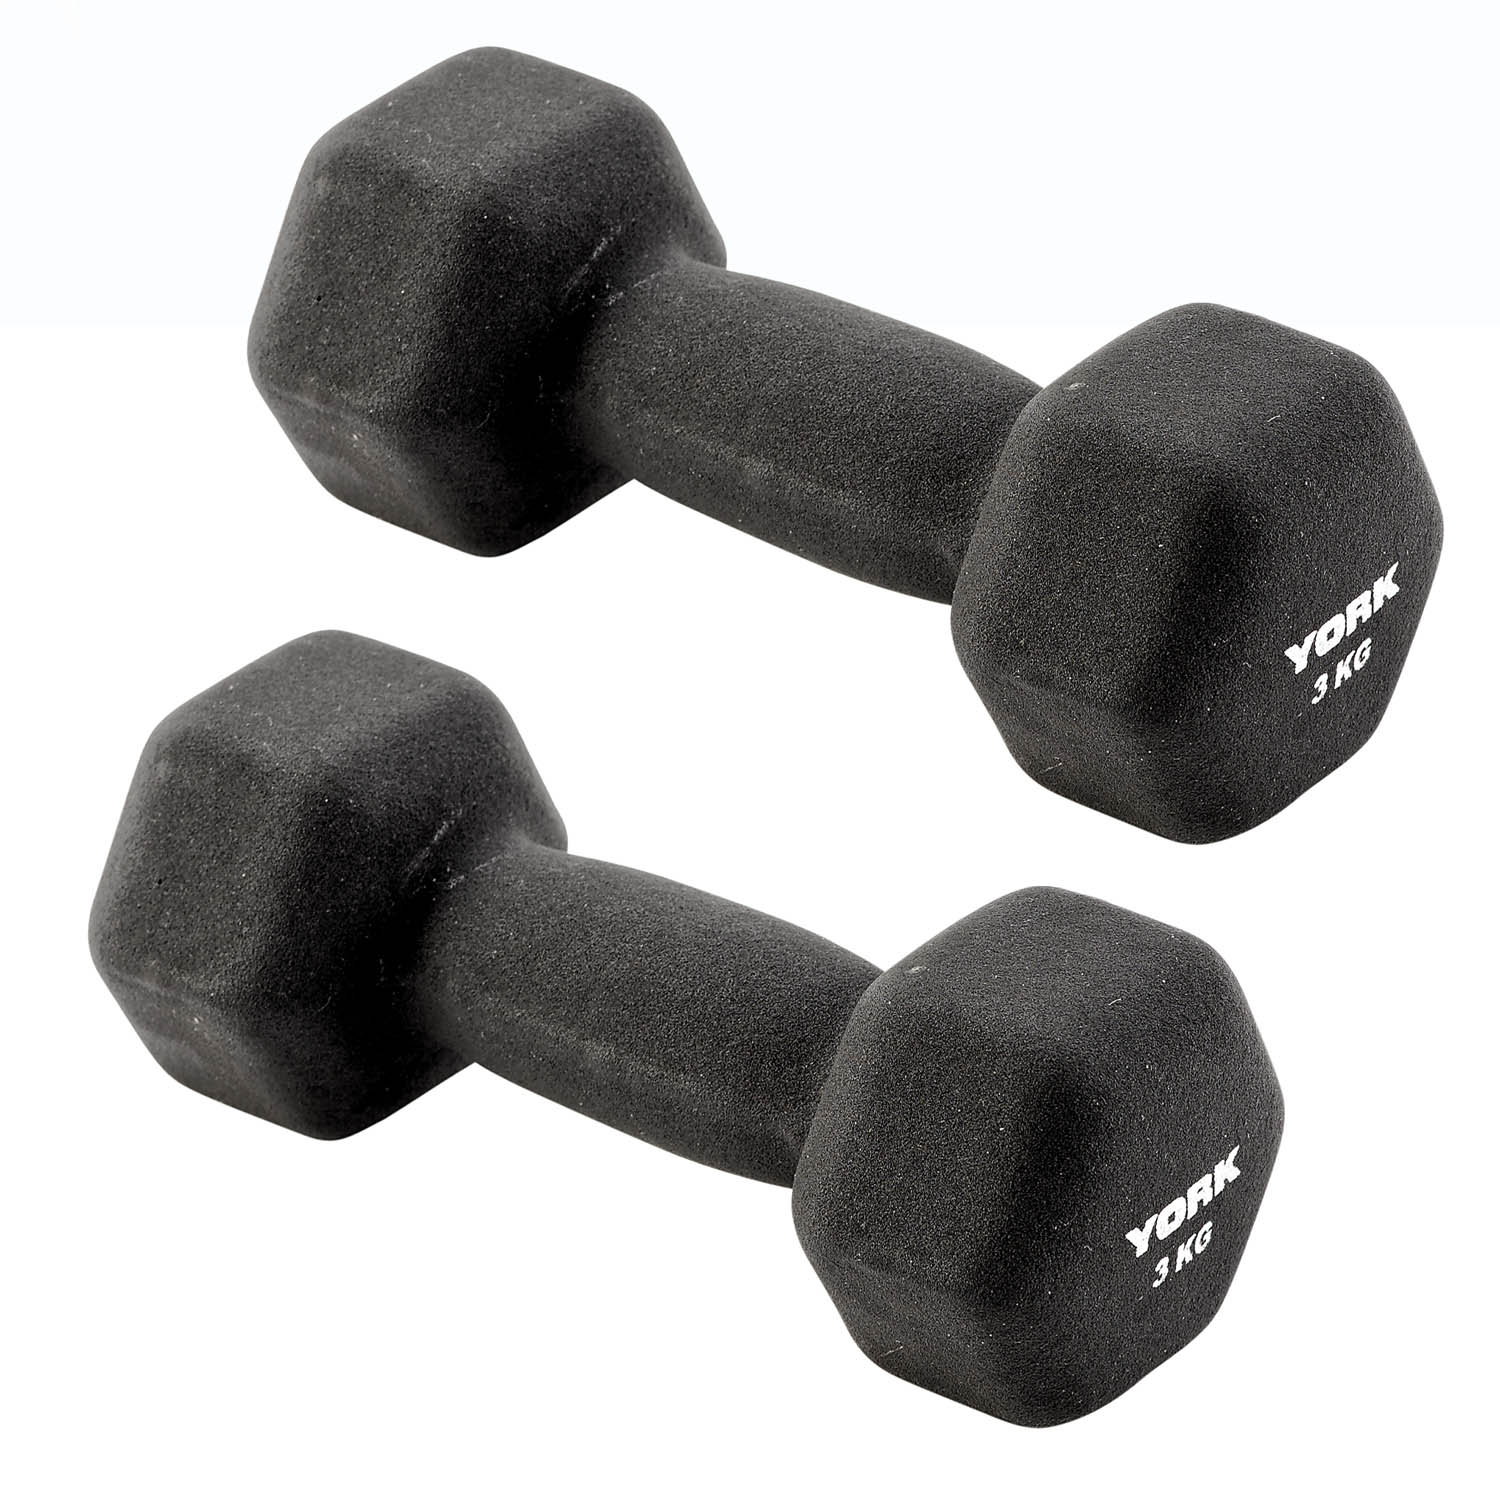 York 2 x 3kg Neo Hex Dumbbell